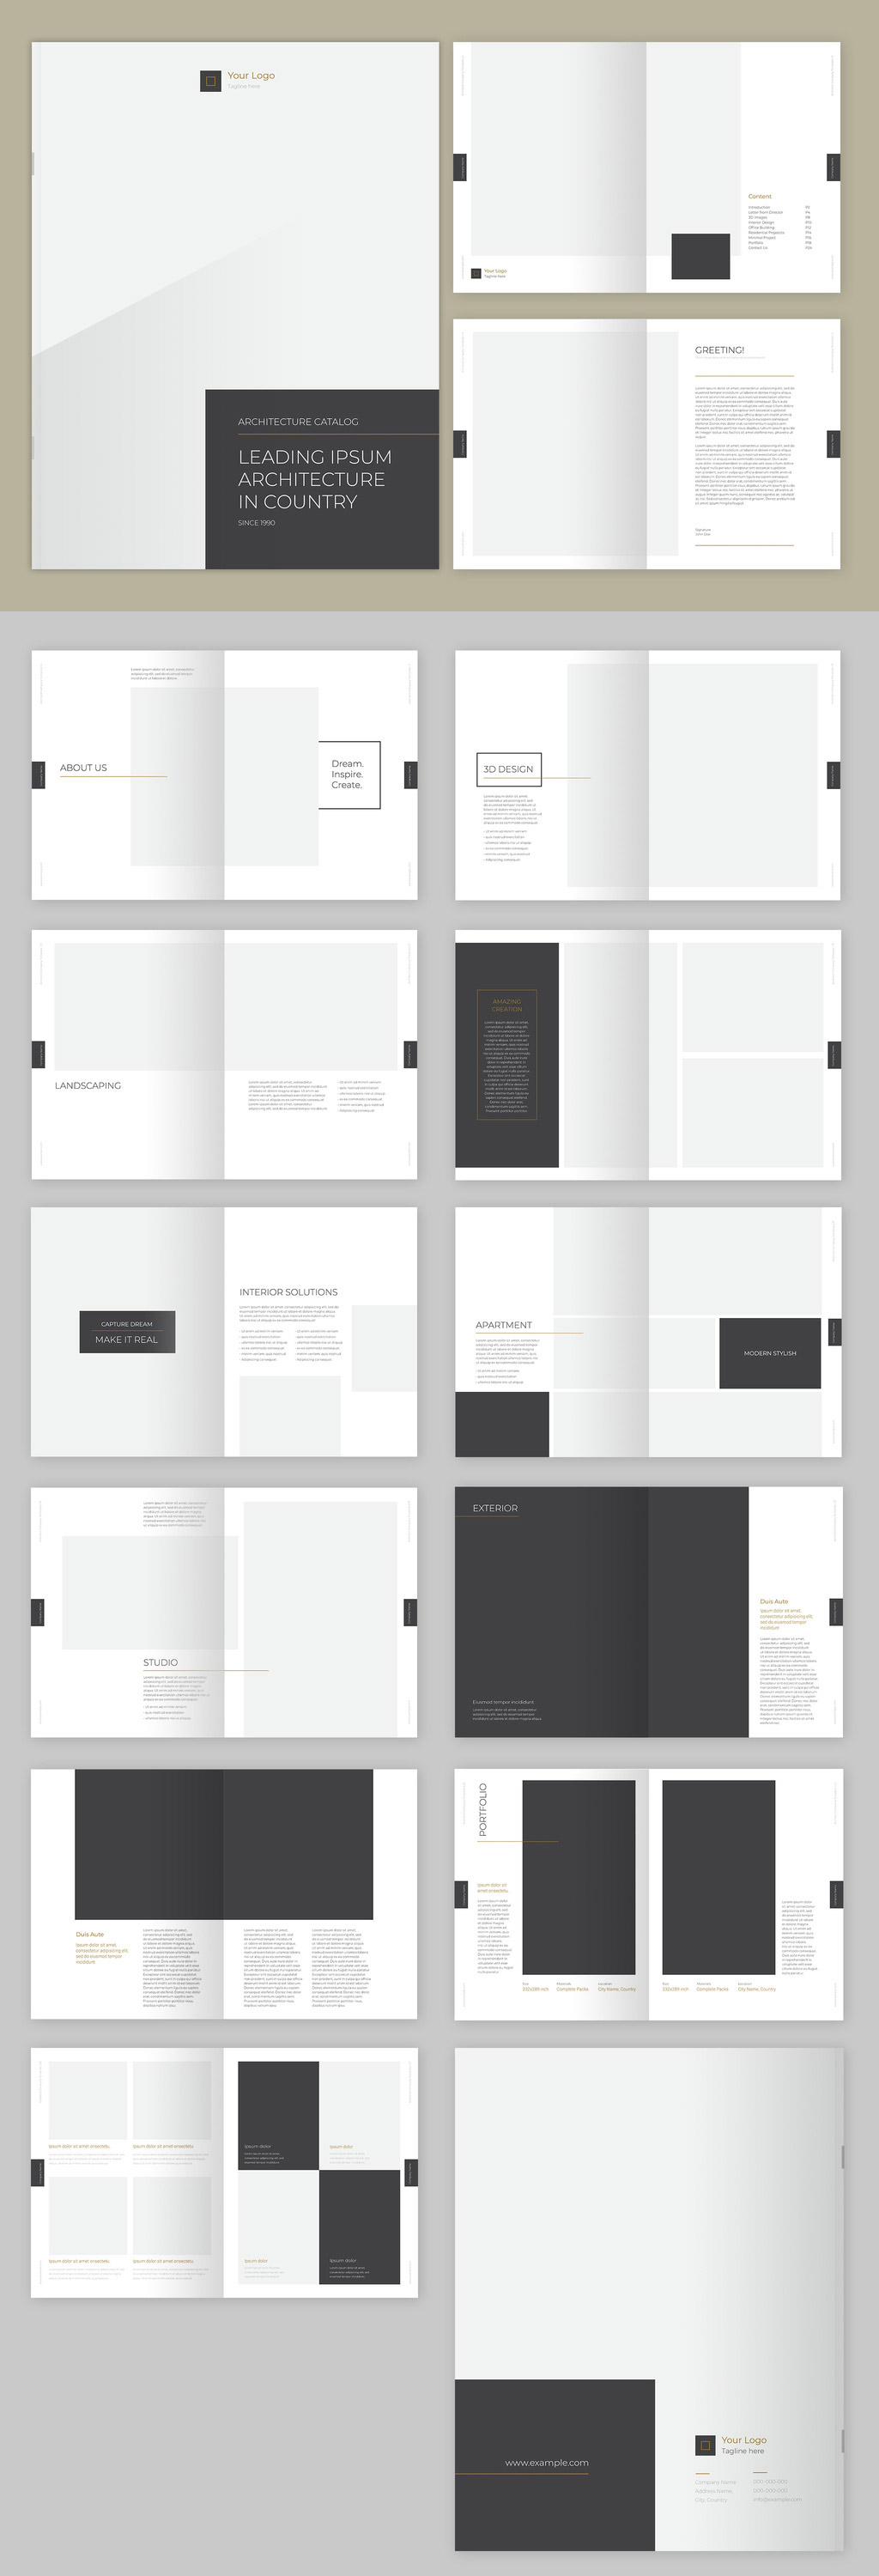 Catalog InDesign layout with gray and gold accents.